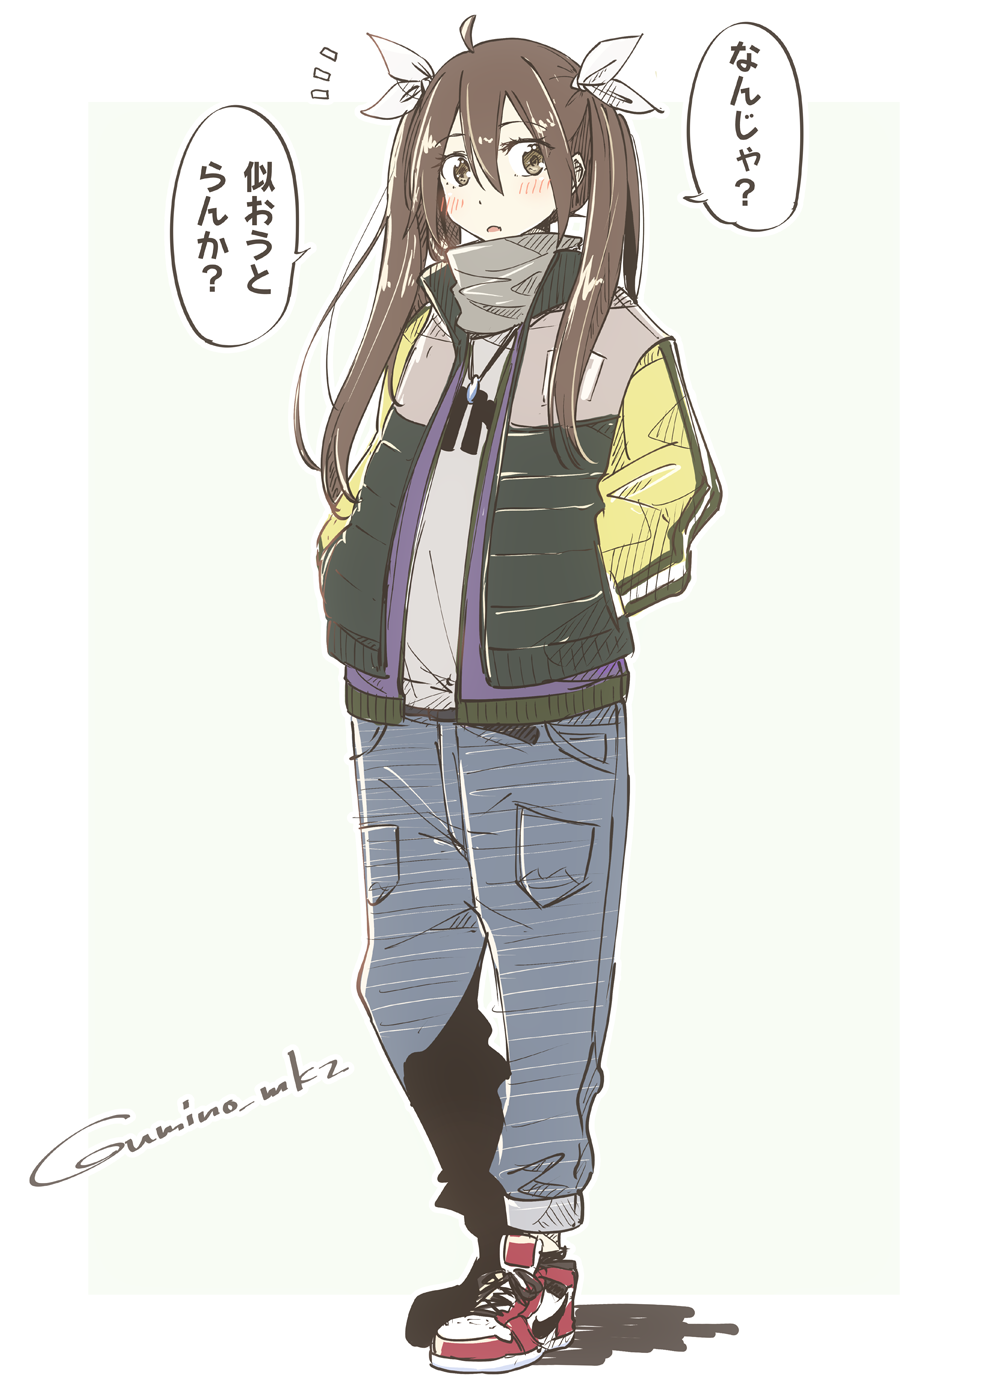 1girl ahoge alternate_costume blush brown_eyes brown_hair commentary_request denim full_body green_jacket grey_scarf grey_shirt hair_between_eyes hair_ribbon hands_in_pockets highres jacket jeans jewelry kantai_collection long_hair looking_at_viewer necklace open_mouth pants red_footwear ribbon scarf shirt shoes simple_background sneakers solo speech_bubble tone_(kantai_collection) translation_request twintails twitter_username umino_mokuzu_(shizumisou) white_background white_ribbon